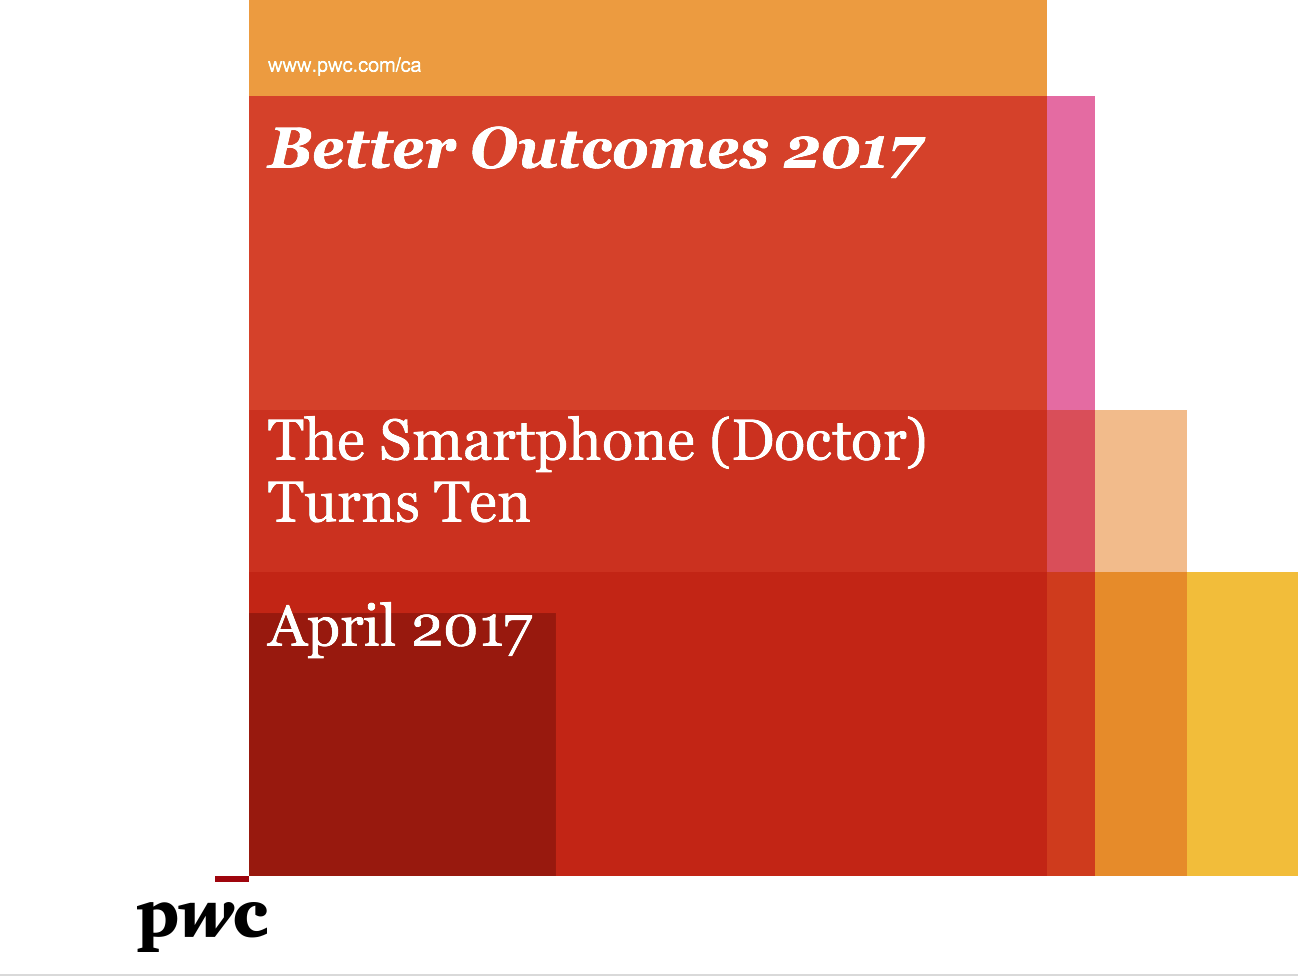 better-outcomes-2017-the-smartphone-doctor-turns-ten